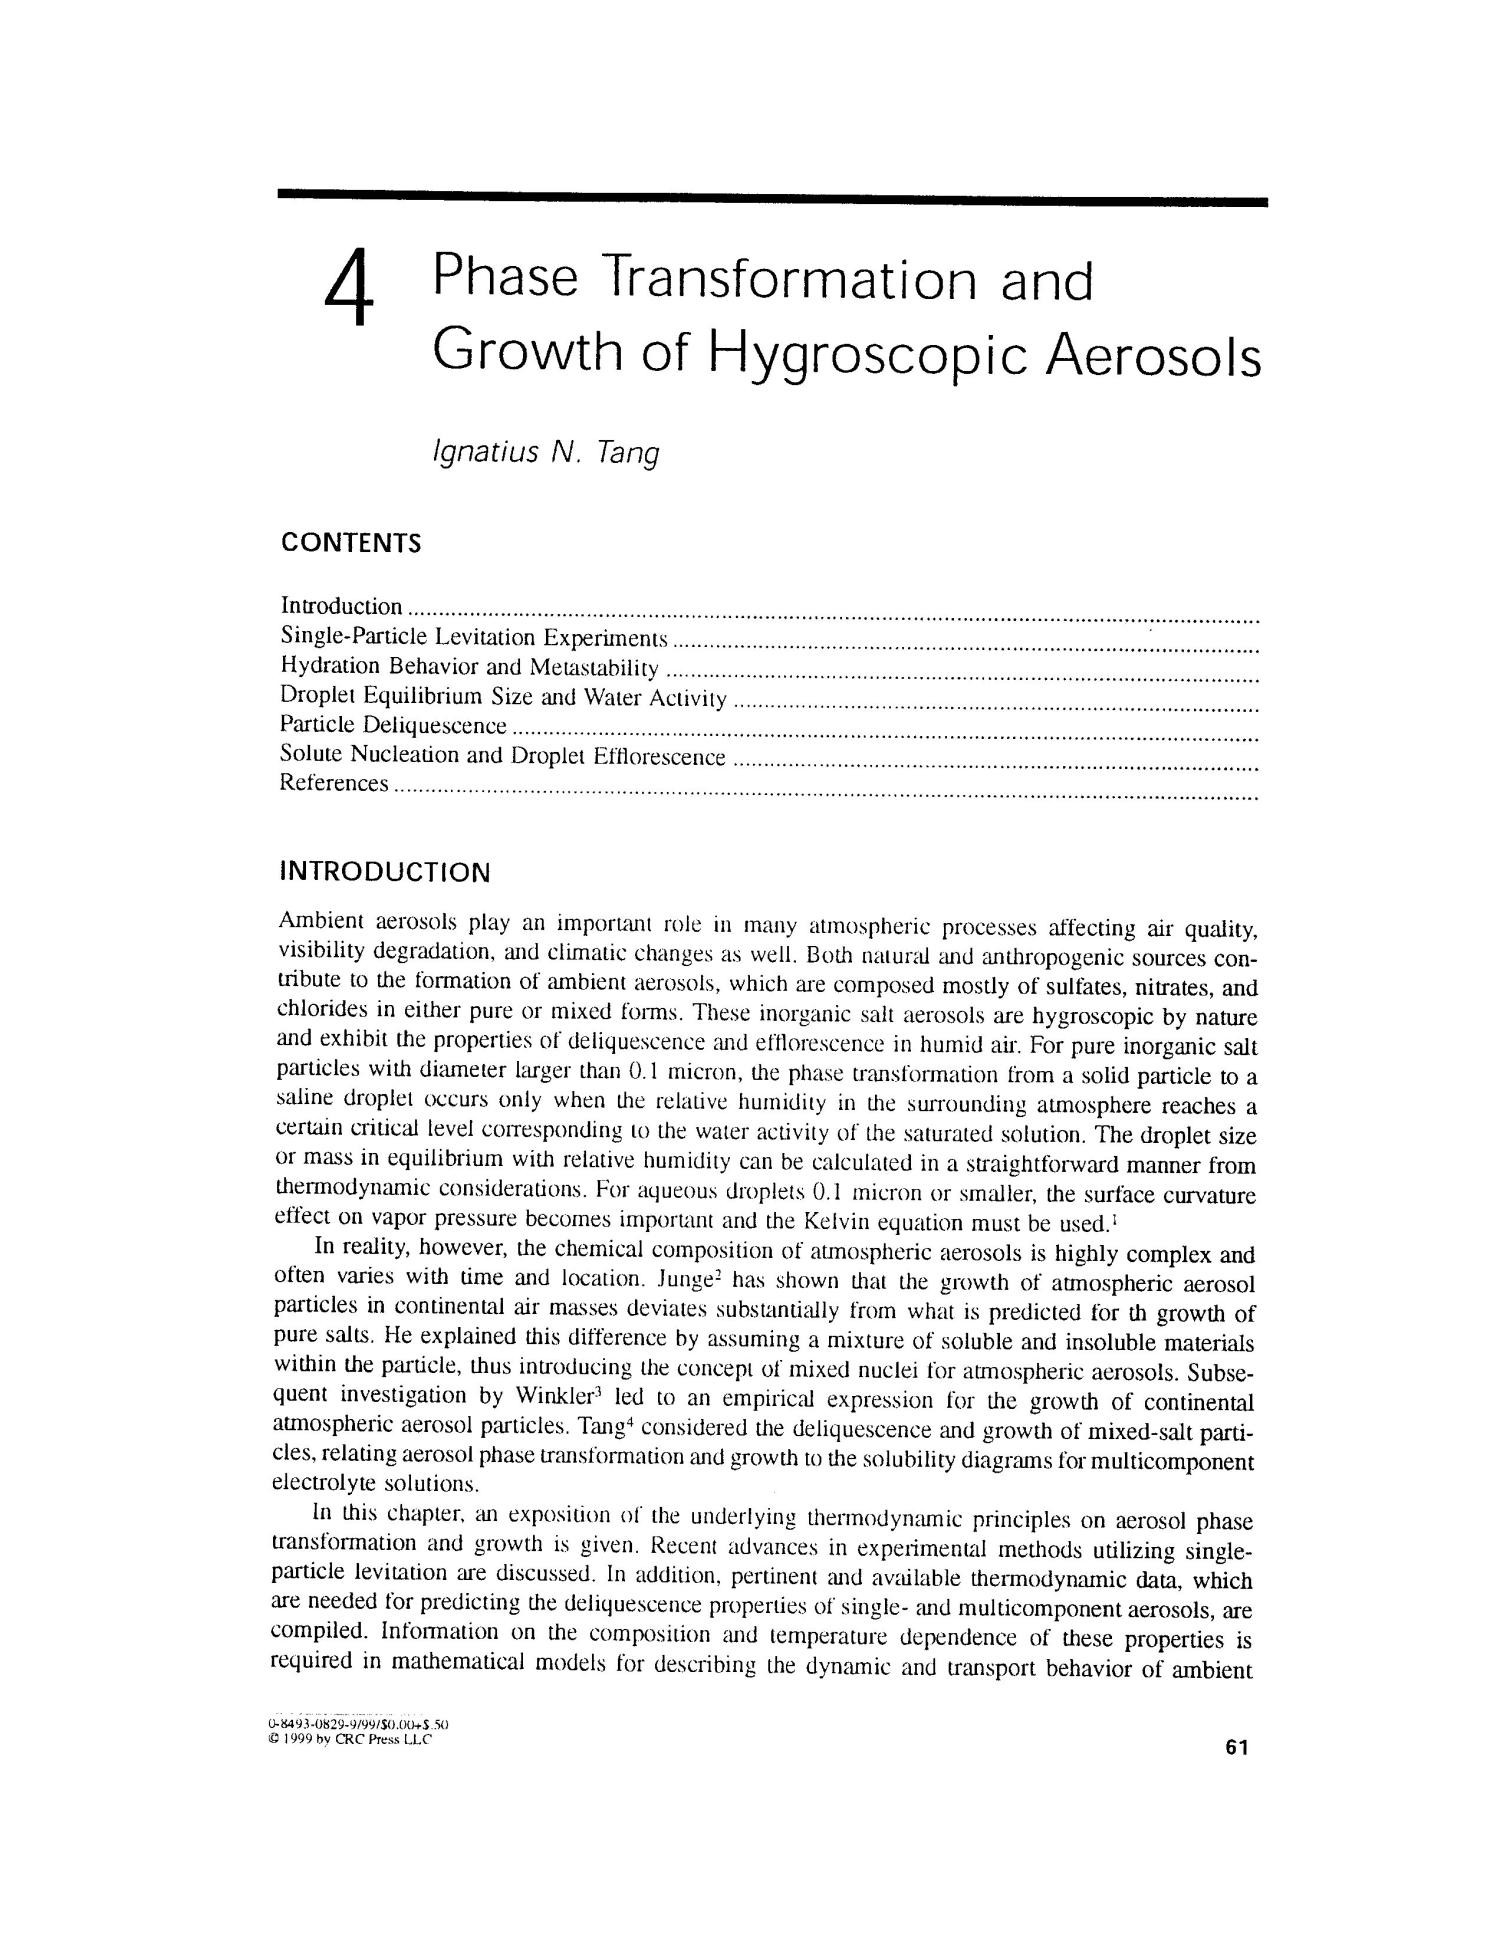 Phase transformation and growth of hygroscopic aerosols                                                                                                      [Sequence #]: 2 of 21